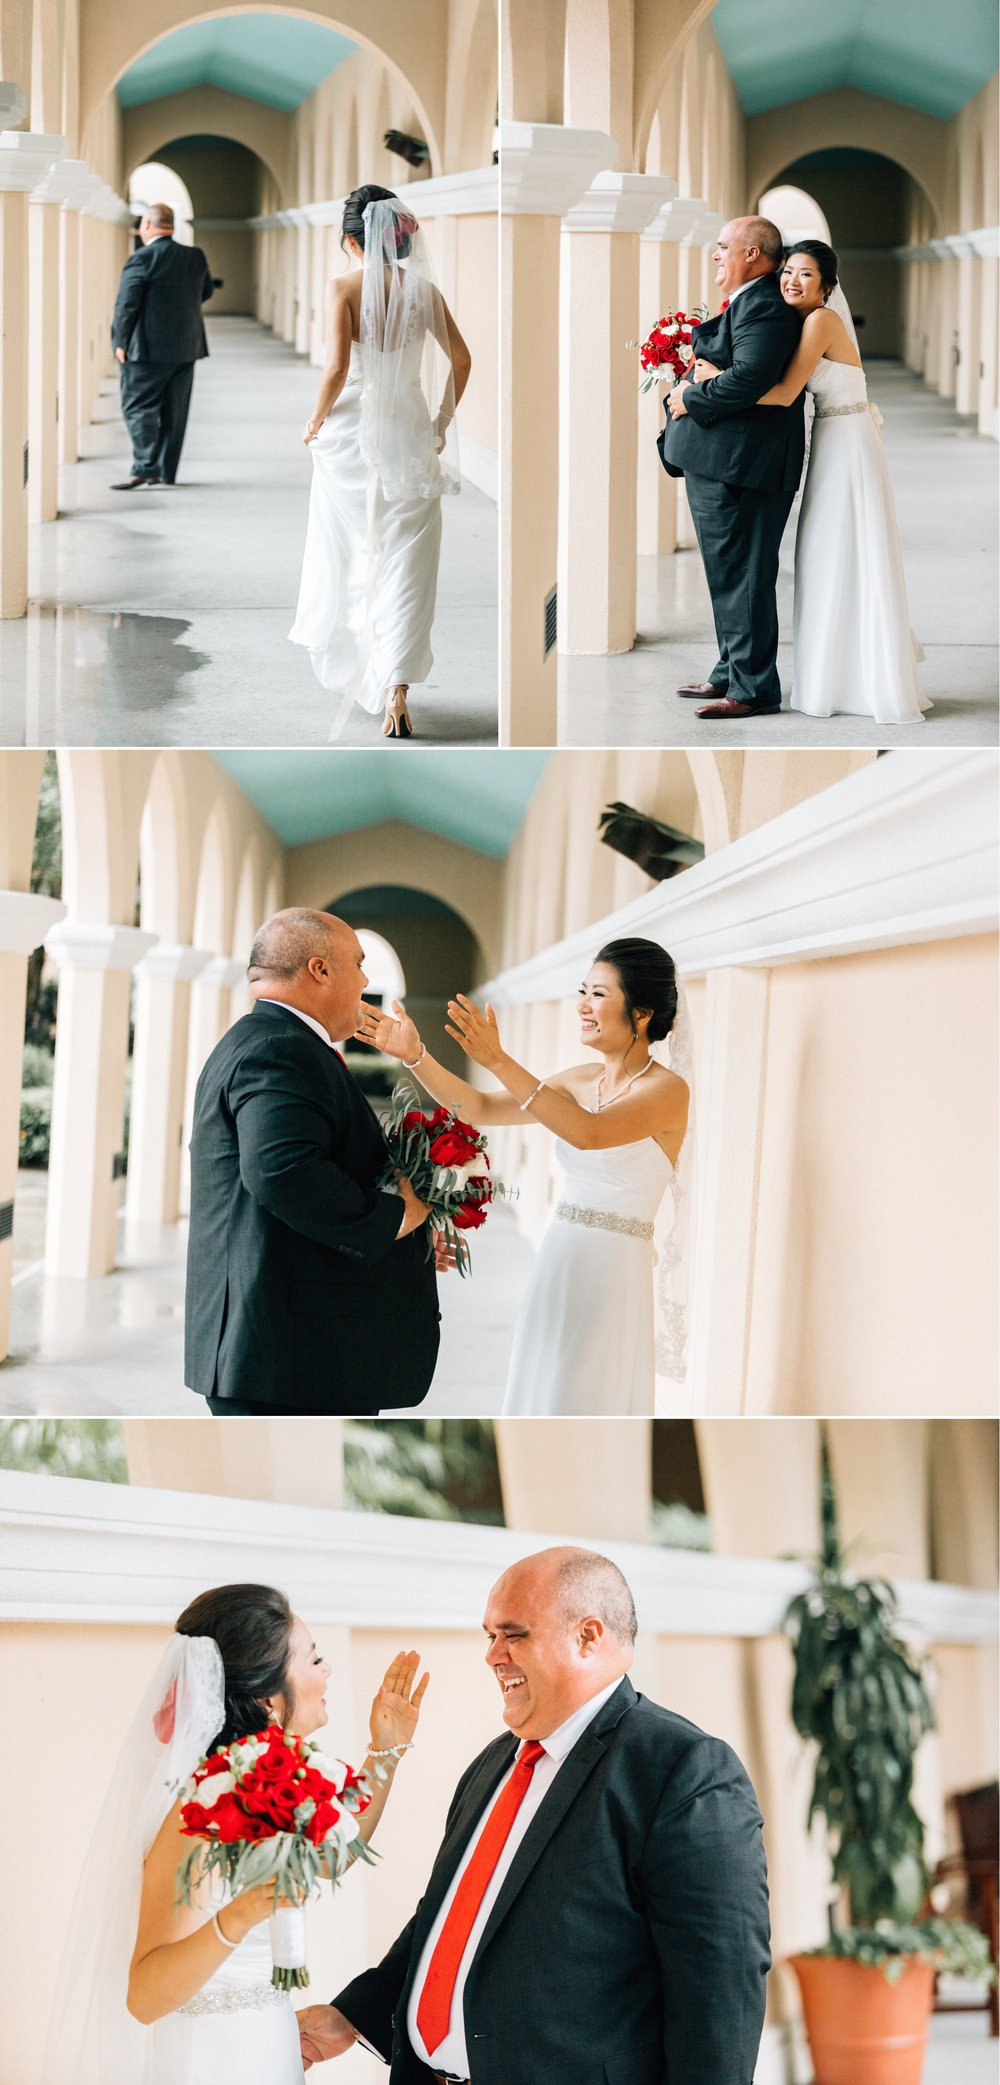 Lakehouse Lake Nona Wedding- Modern Colorful Red Multicultural- Susan + Manolo 13.jpg